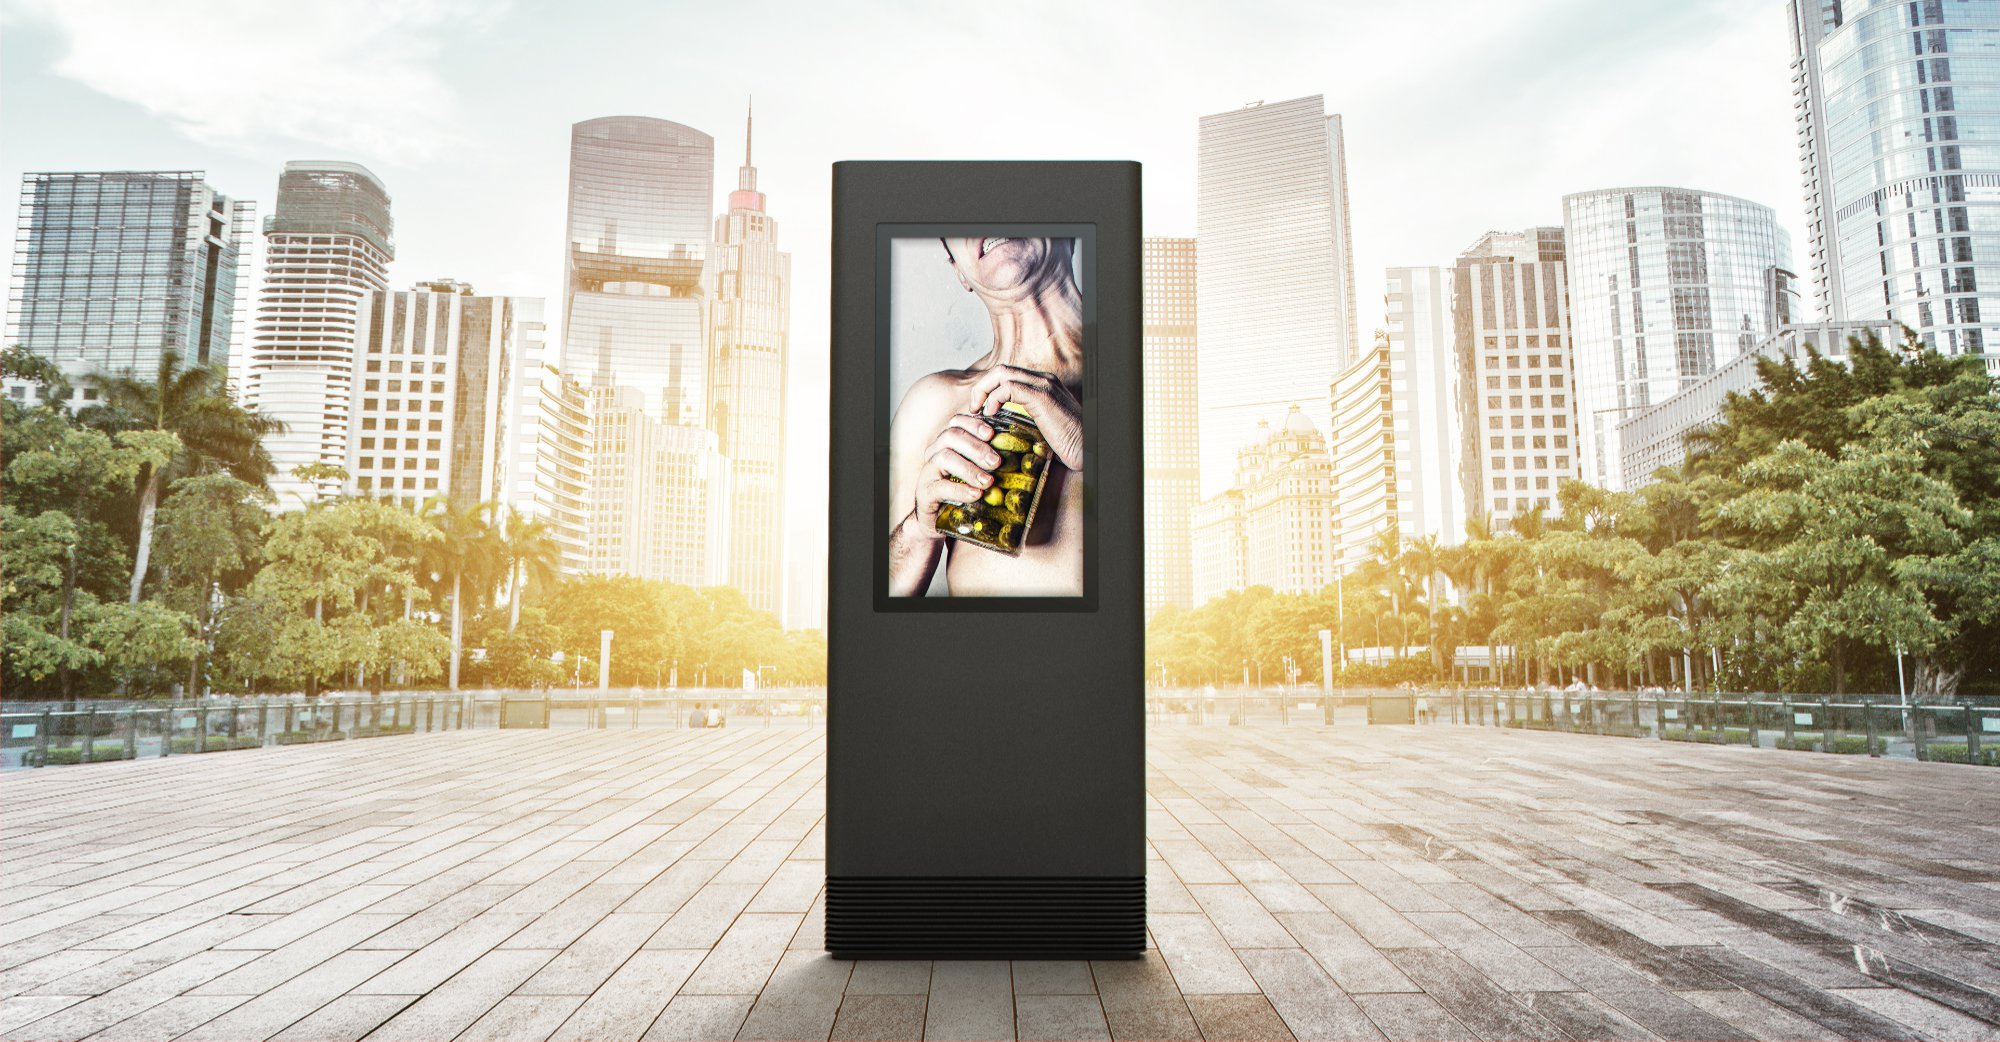 Outdoor kiosk solutions